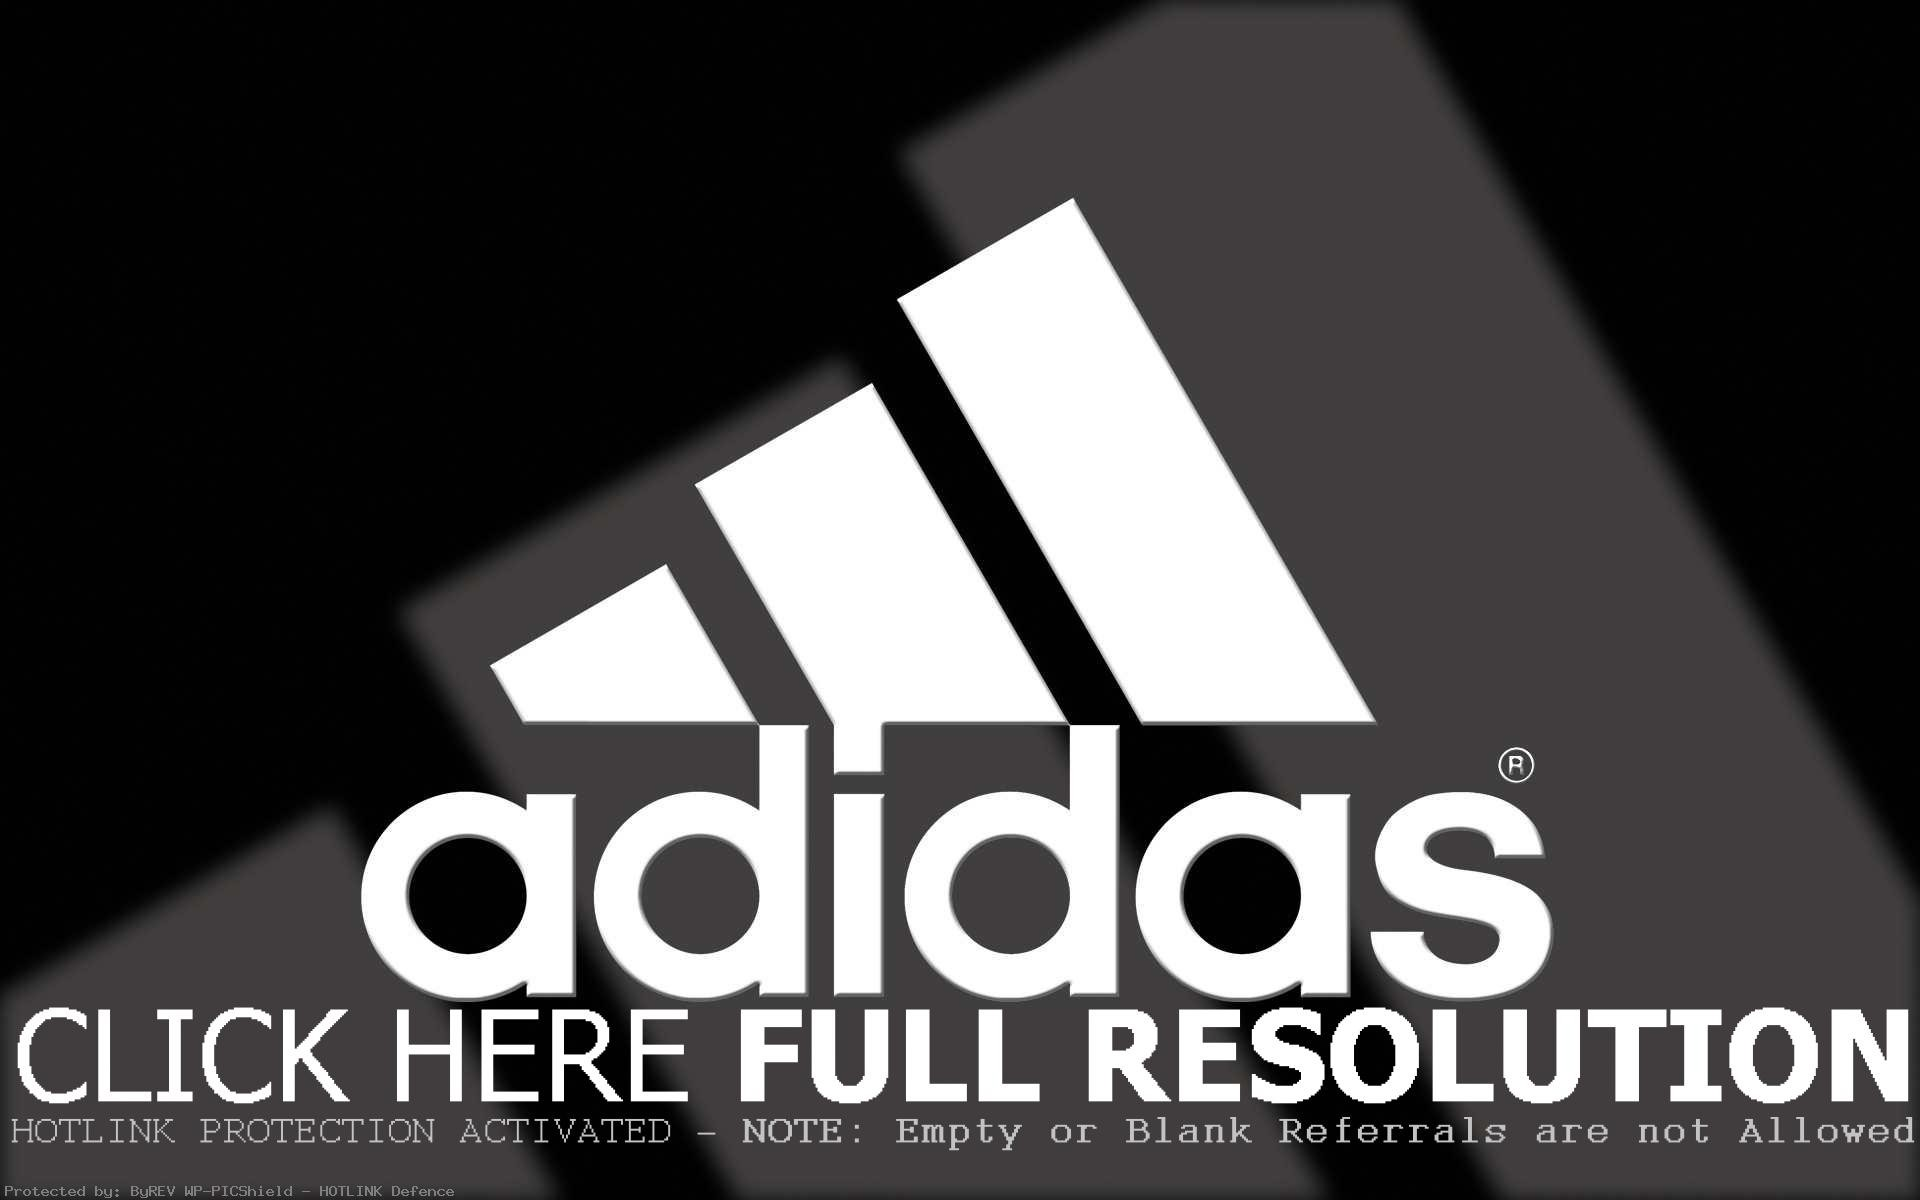 1920x1200 Adidas Originals Logo Gallery Wallpaper for Free Fine 500×889 Wallpaper  Adidas (36 Wallpapers